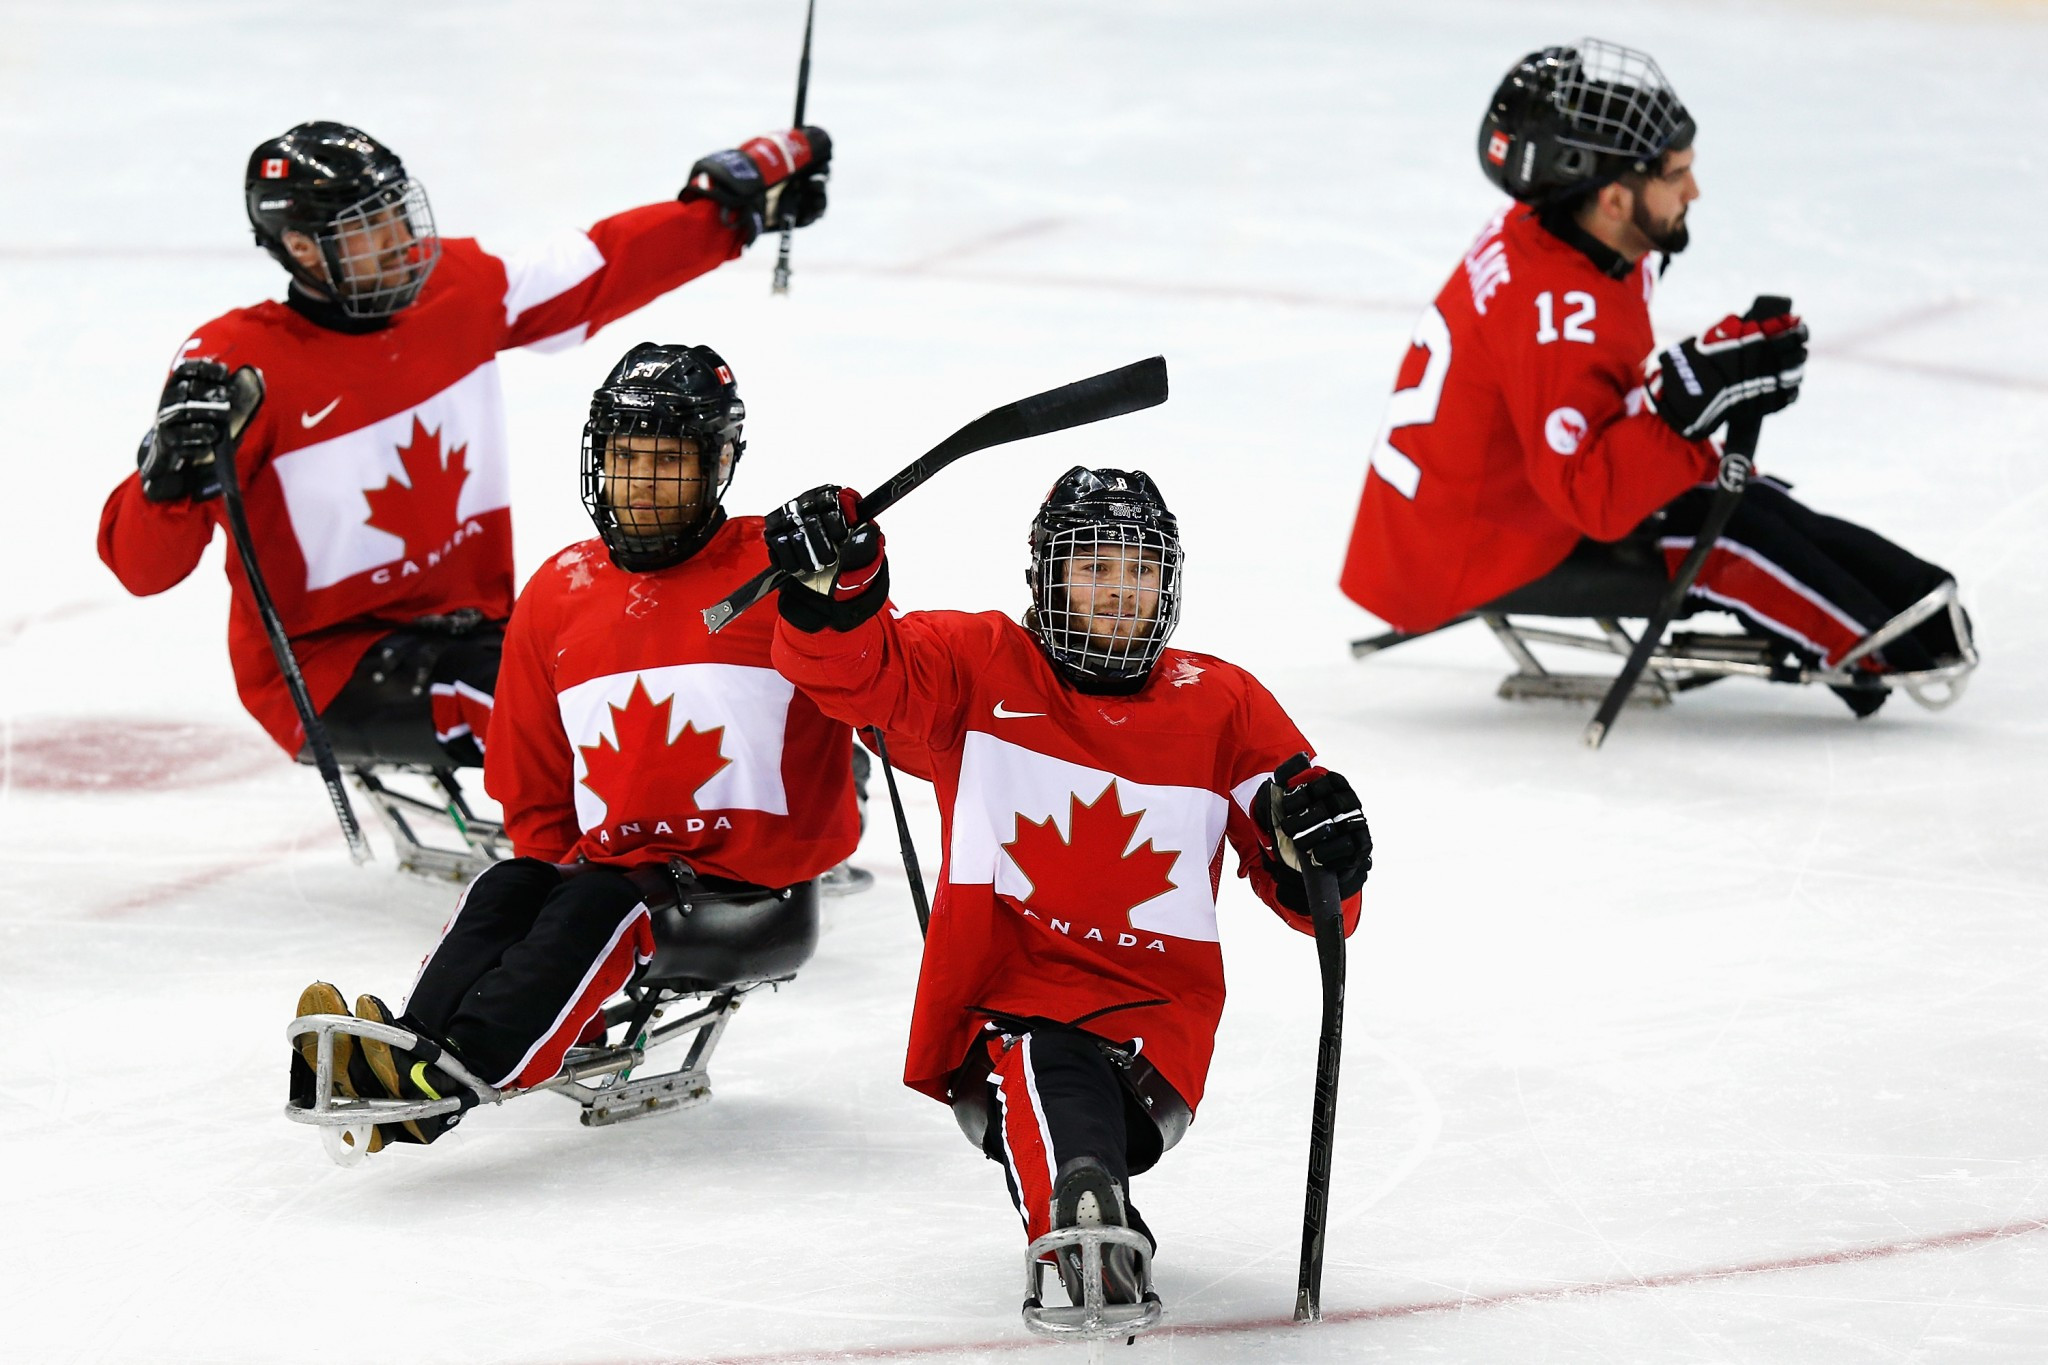 Canada won the ice sledge hockey bronze medal at the 2014 Winter Paralympic Games in Sochi ©Getty Images